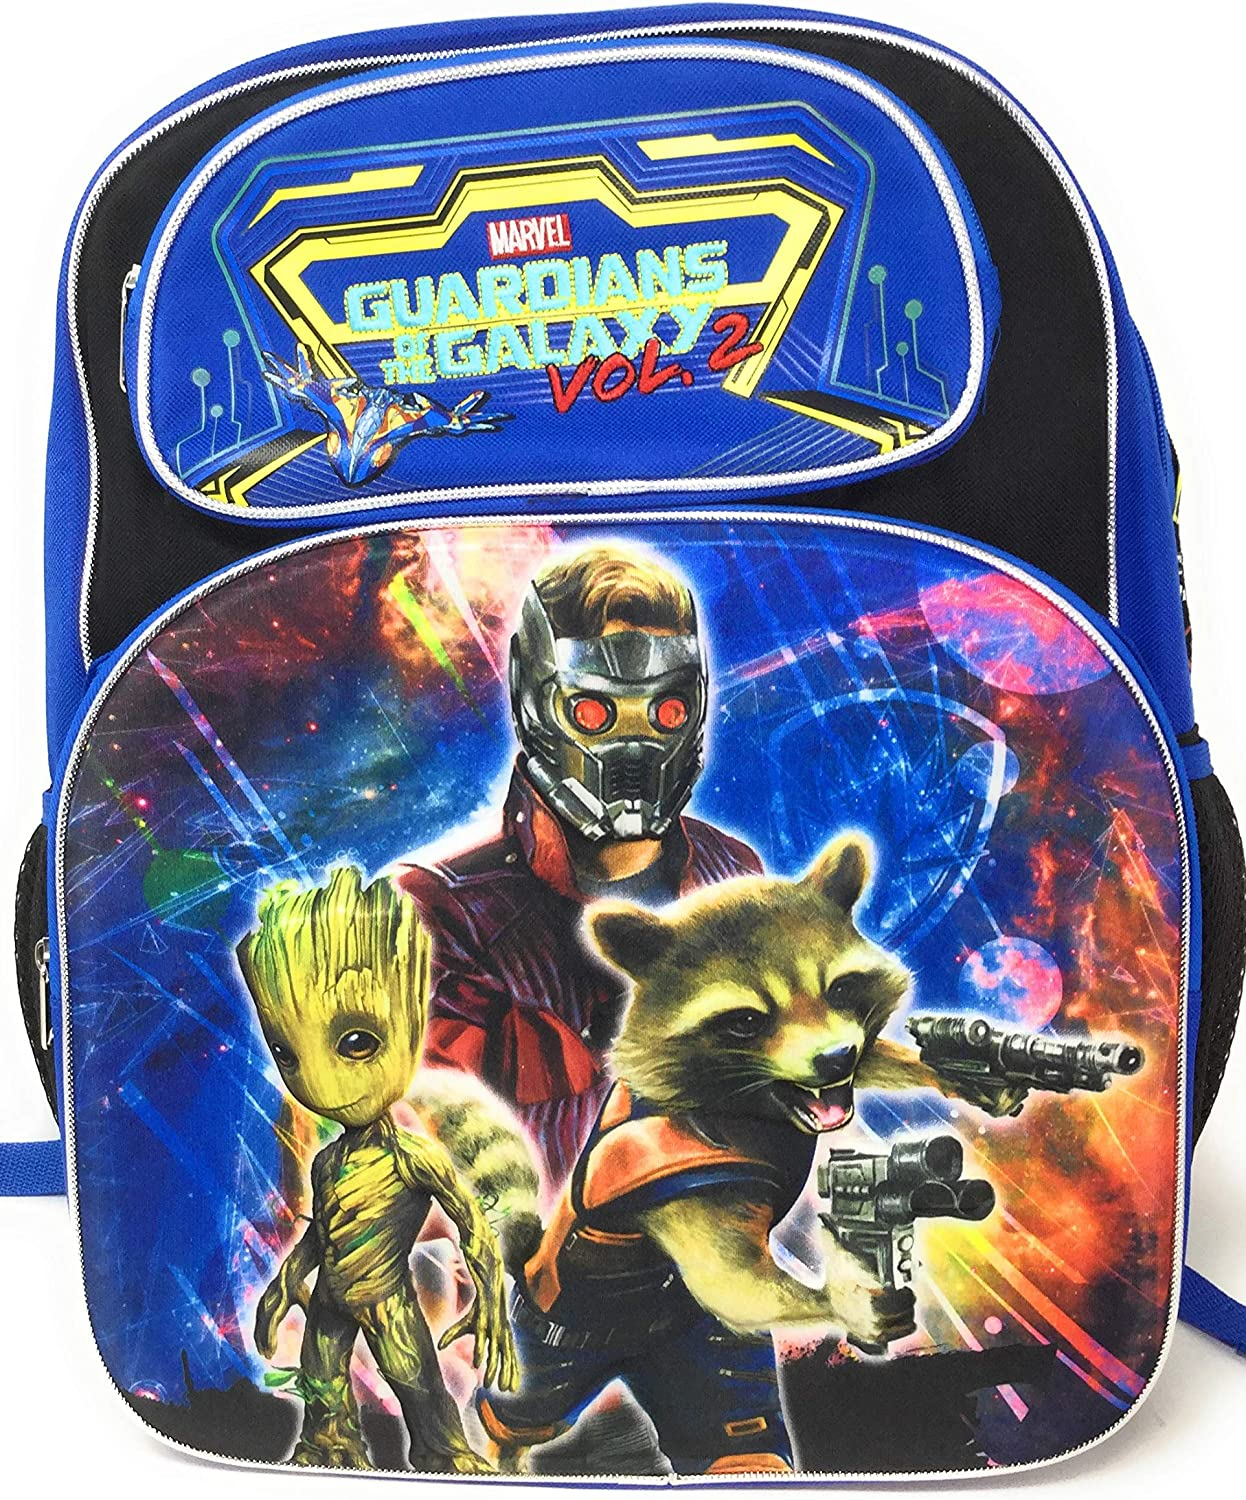 Marvel Guardians Of The Galaxy Vol 2, 3D Deluxe 16  Backpack. Features Star Lord, Groot and Rocket. Canvas Backpack with 2 Extra Front Pockets & Embroidered Writing, Padded Back and Shoulder Straps  Top Quality You Can See